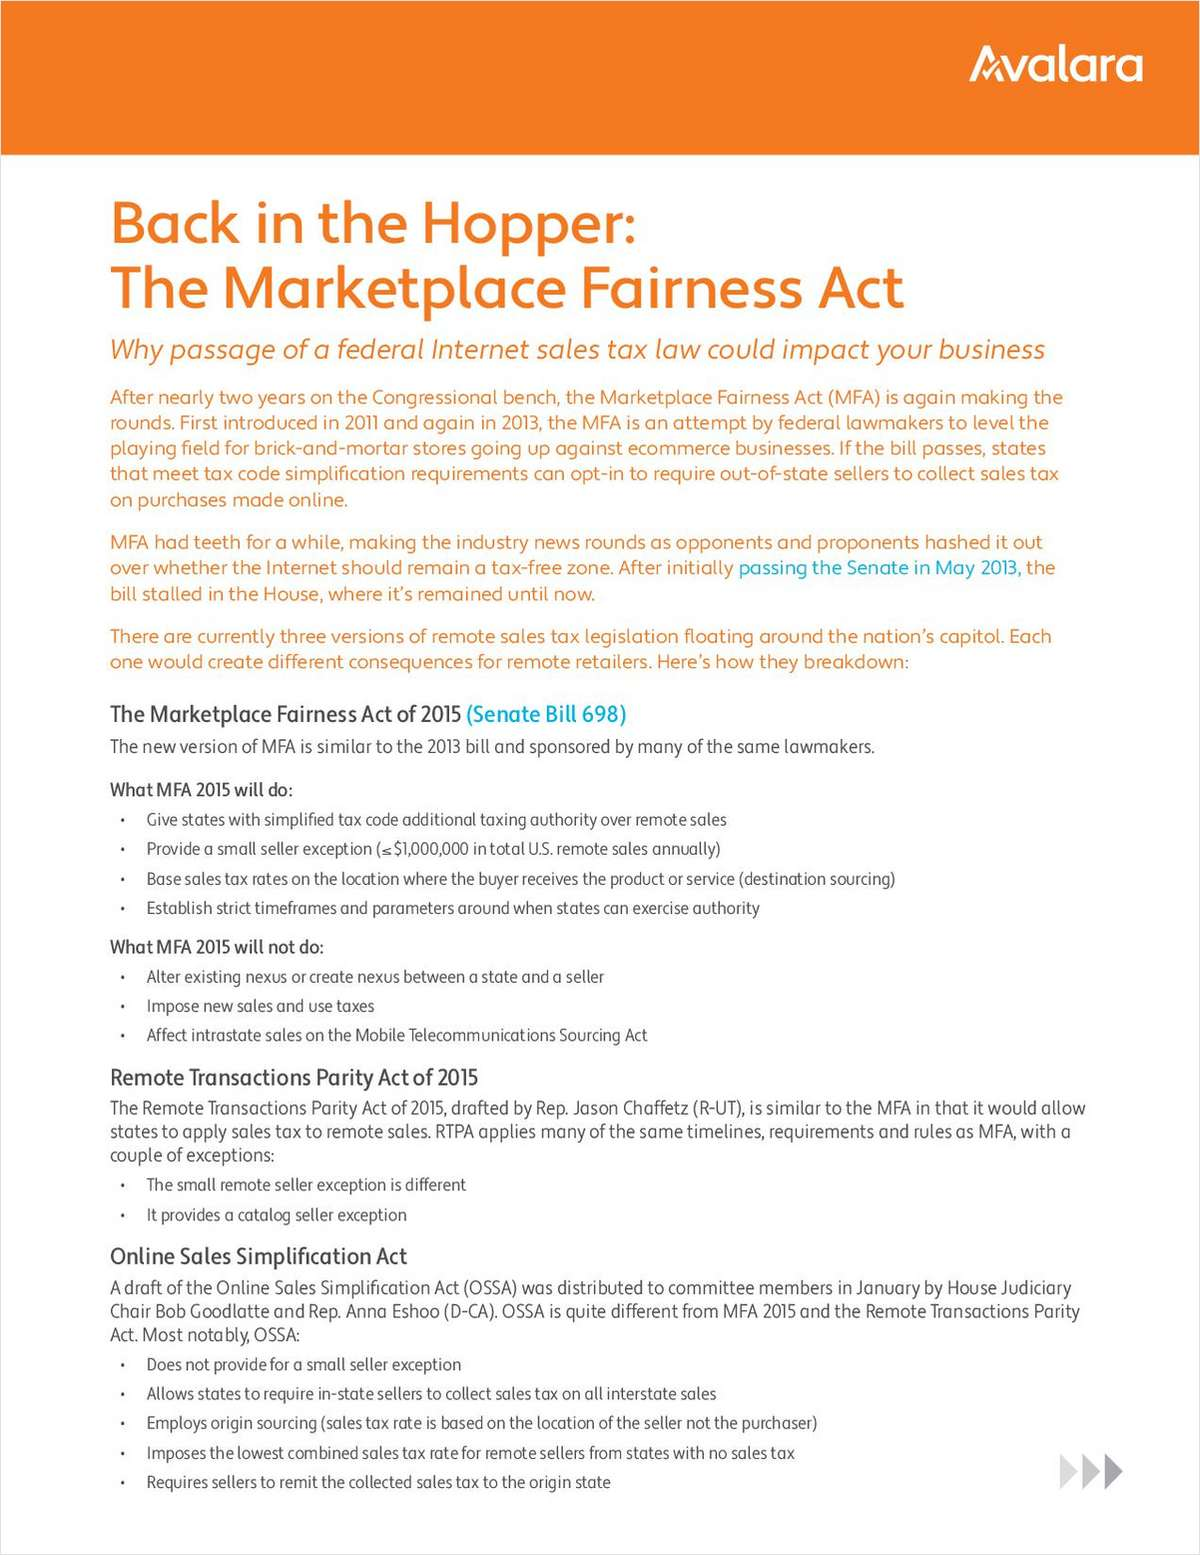 Back in the Hopper: The Marketplace Fairness Act